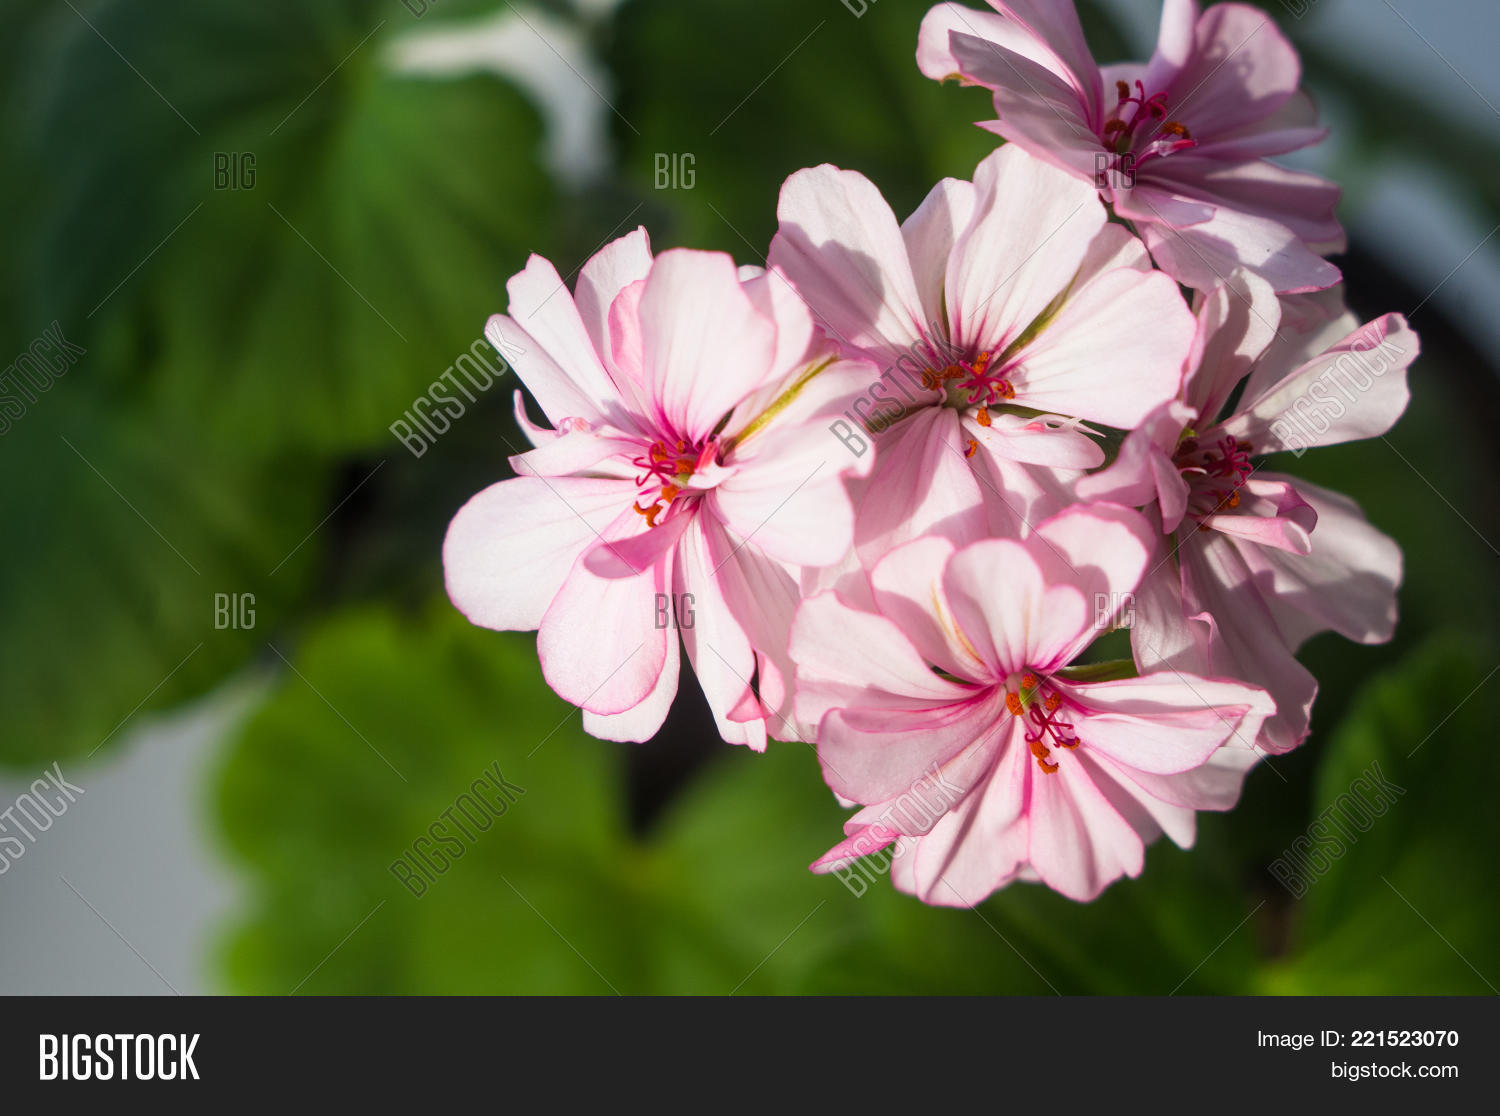 Lovely Pink White Image Photo Free Trial Bigstock